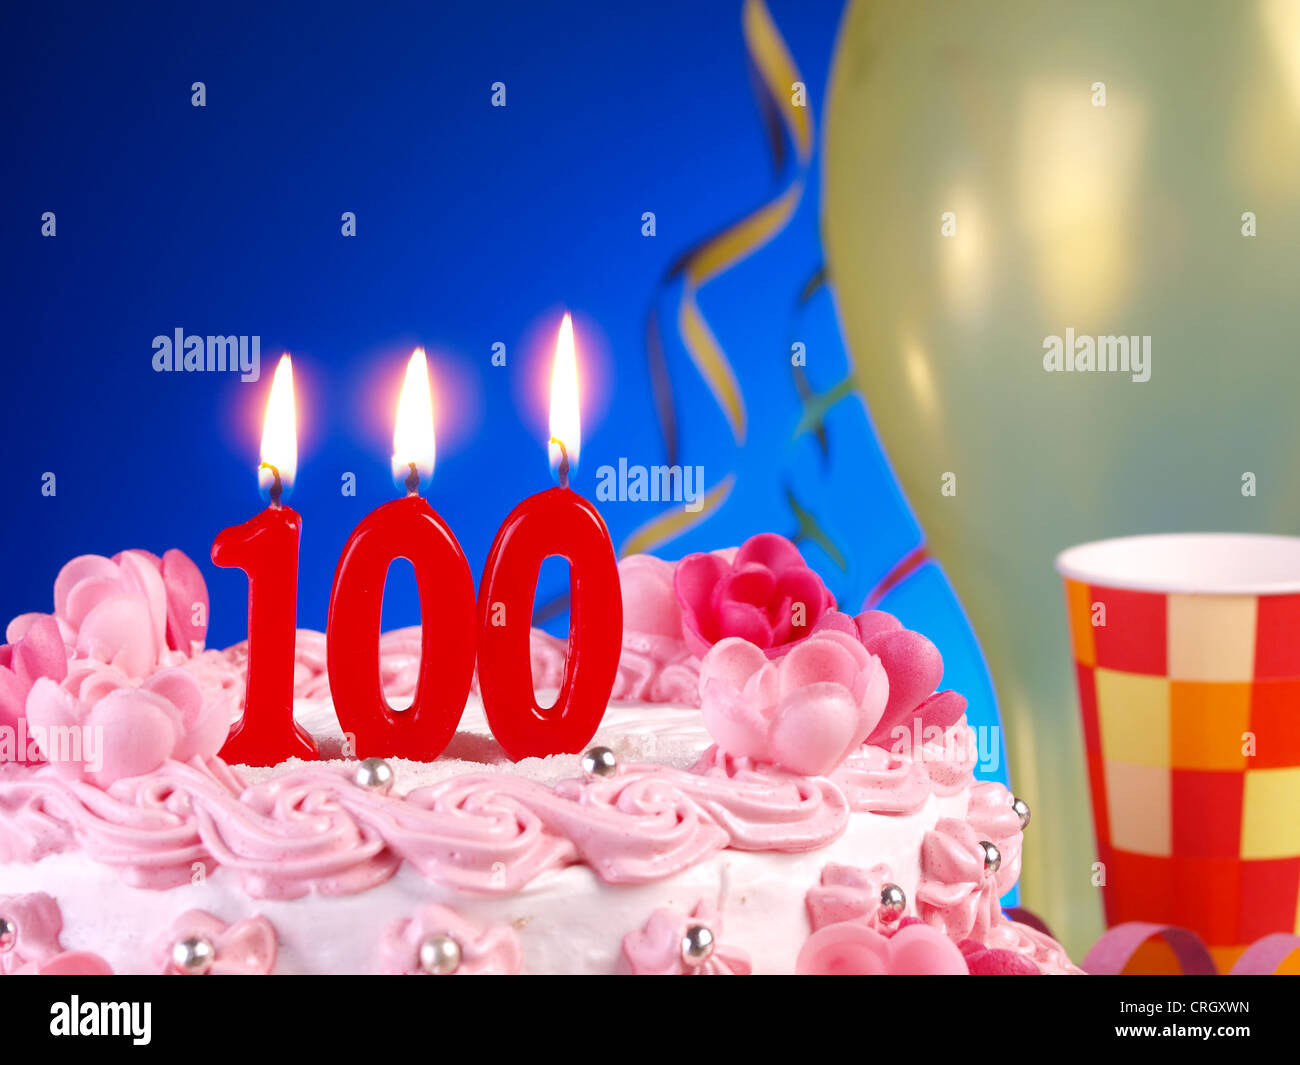 Birthday Anniversary Cake With Candles Showing Nr 100